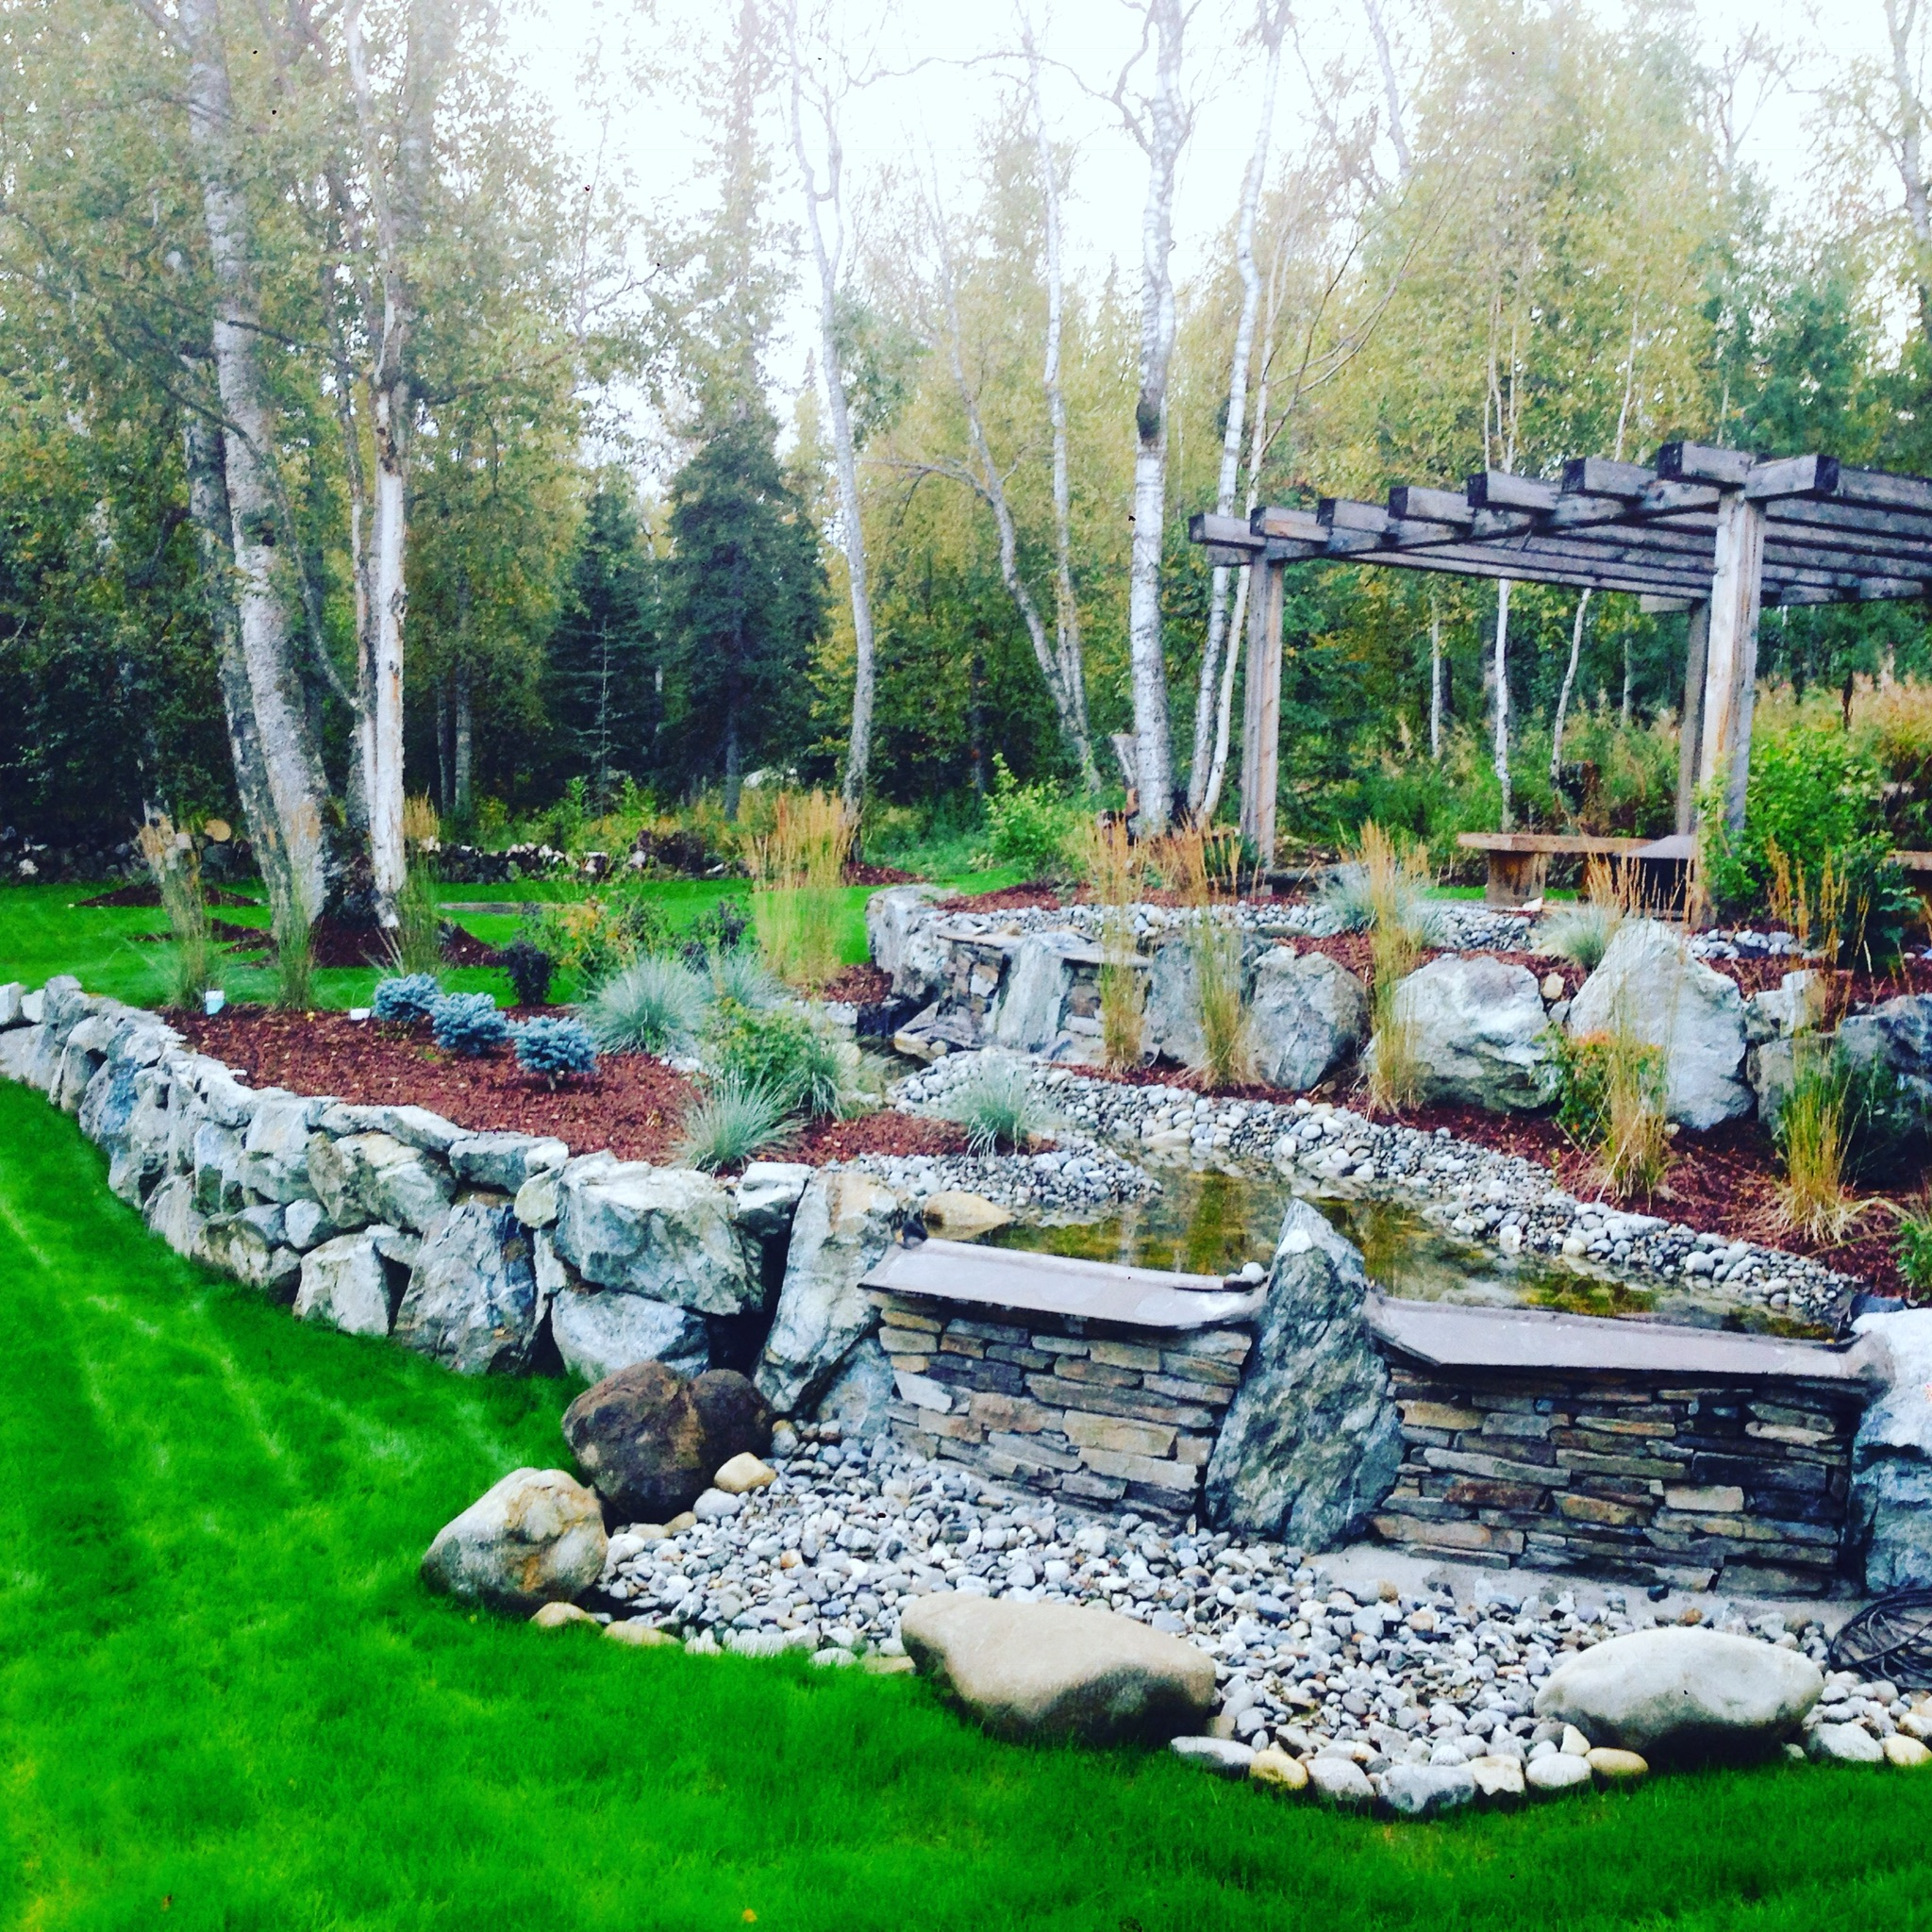 Lawn Care and Landscaping Services in Anchorage, AK